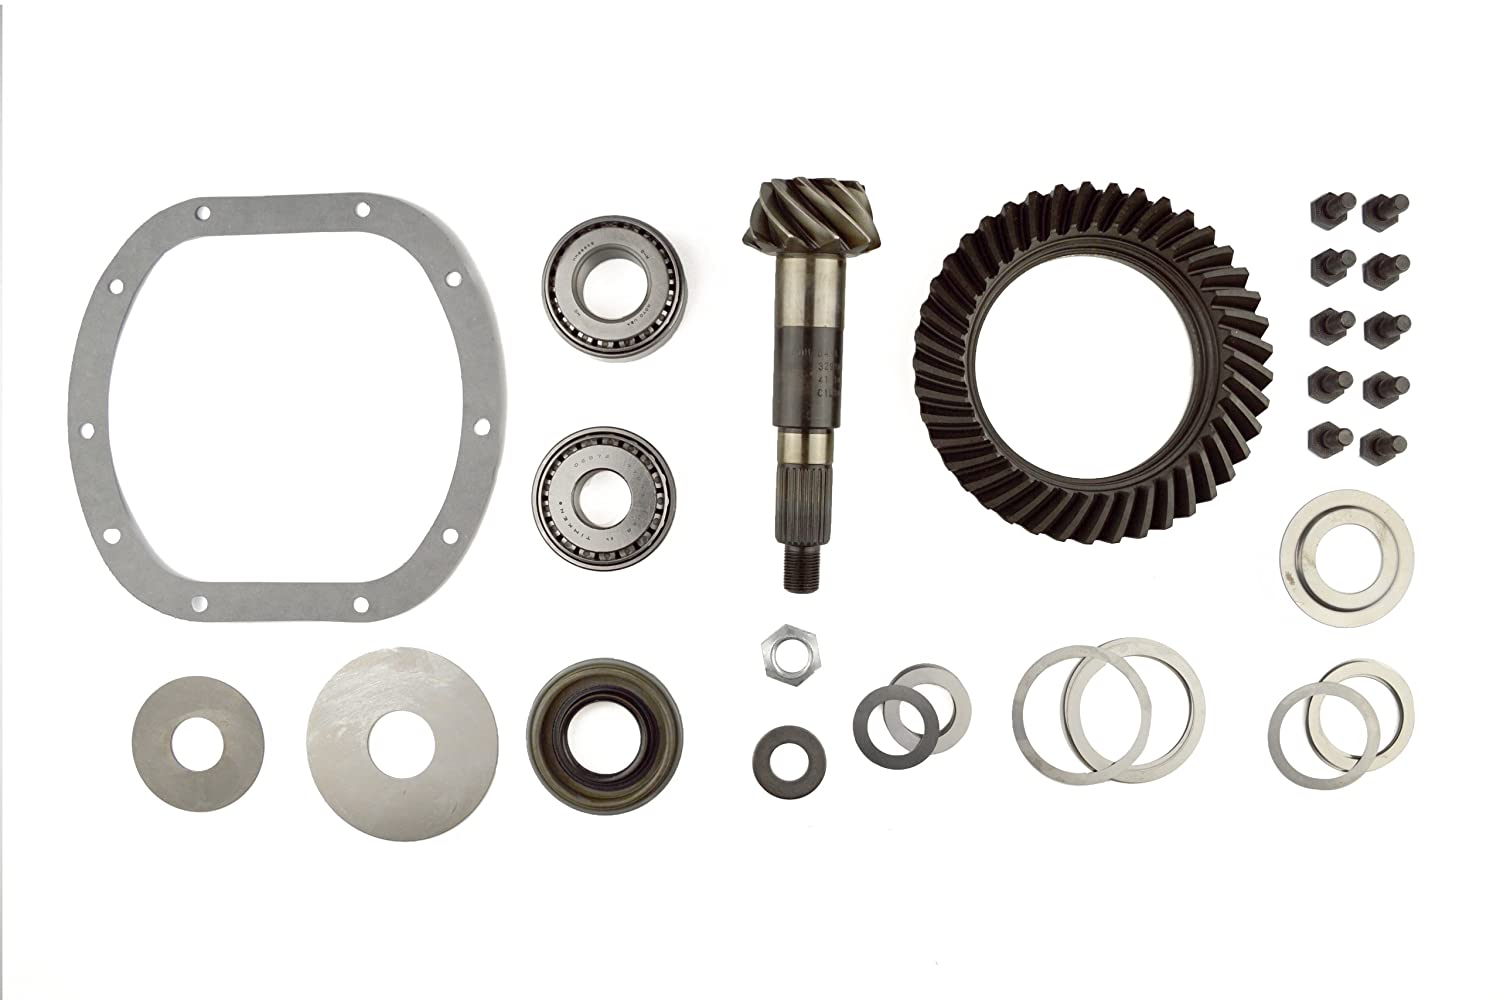 Spicer 706503-4X Ring and Pinion Gear Set